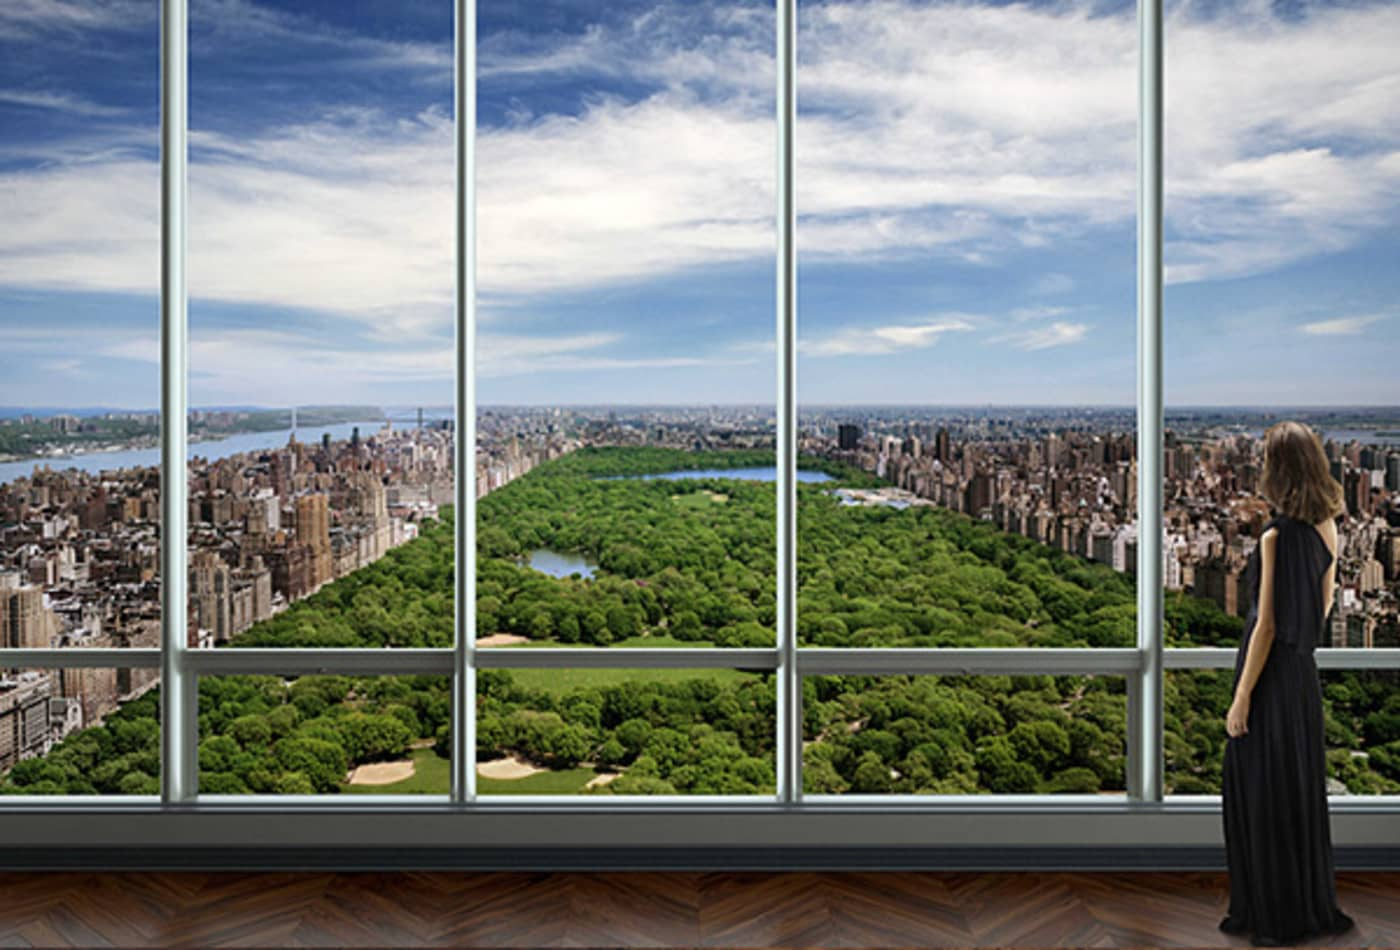 48488608 Most-Expensive-NYC-Apartments-157-3.jpg